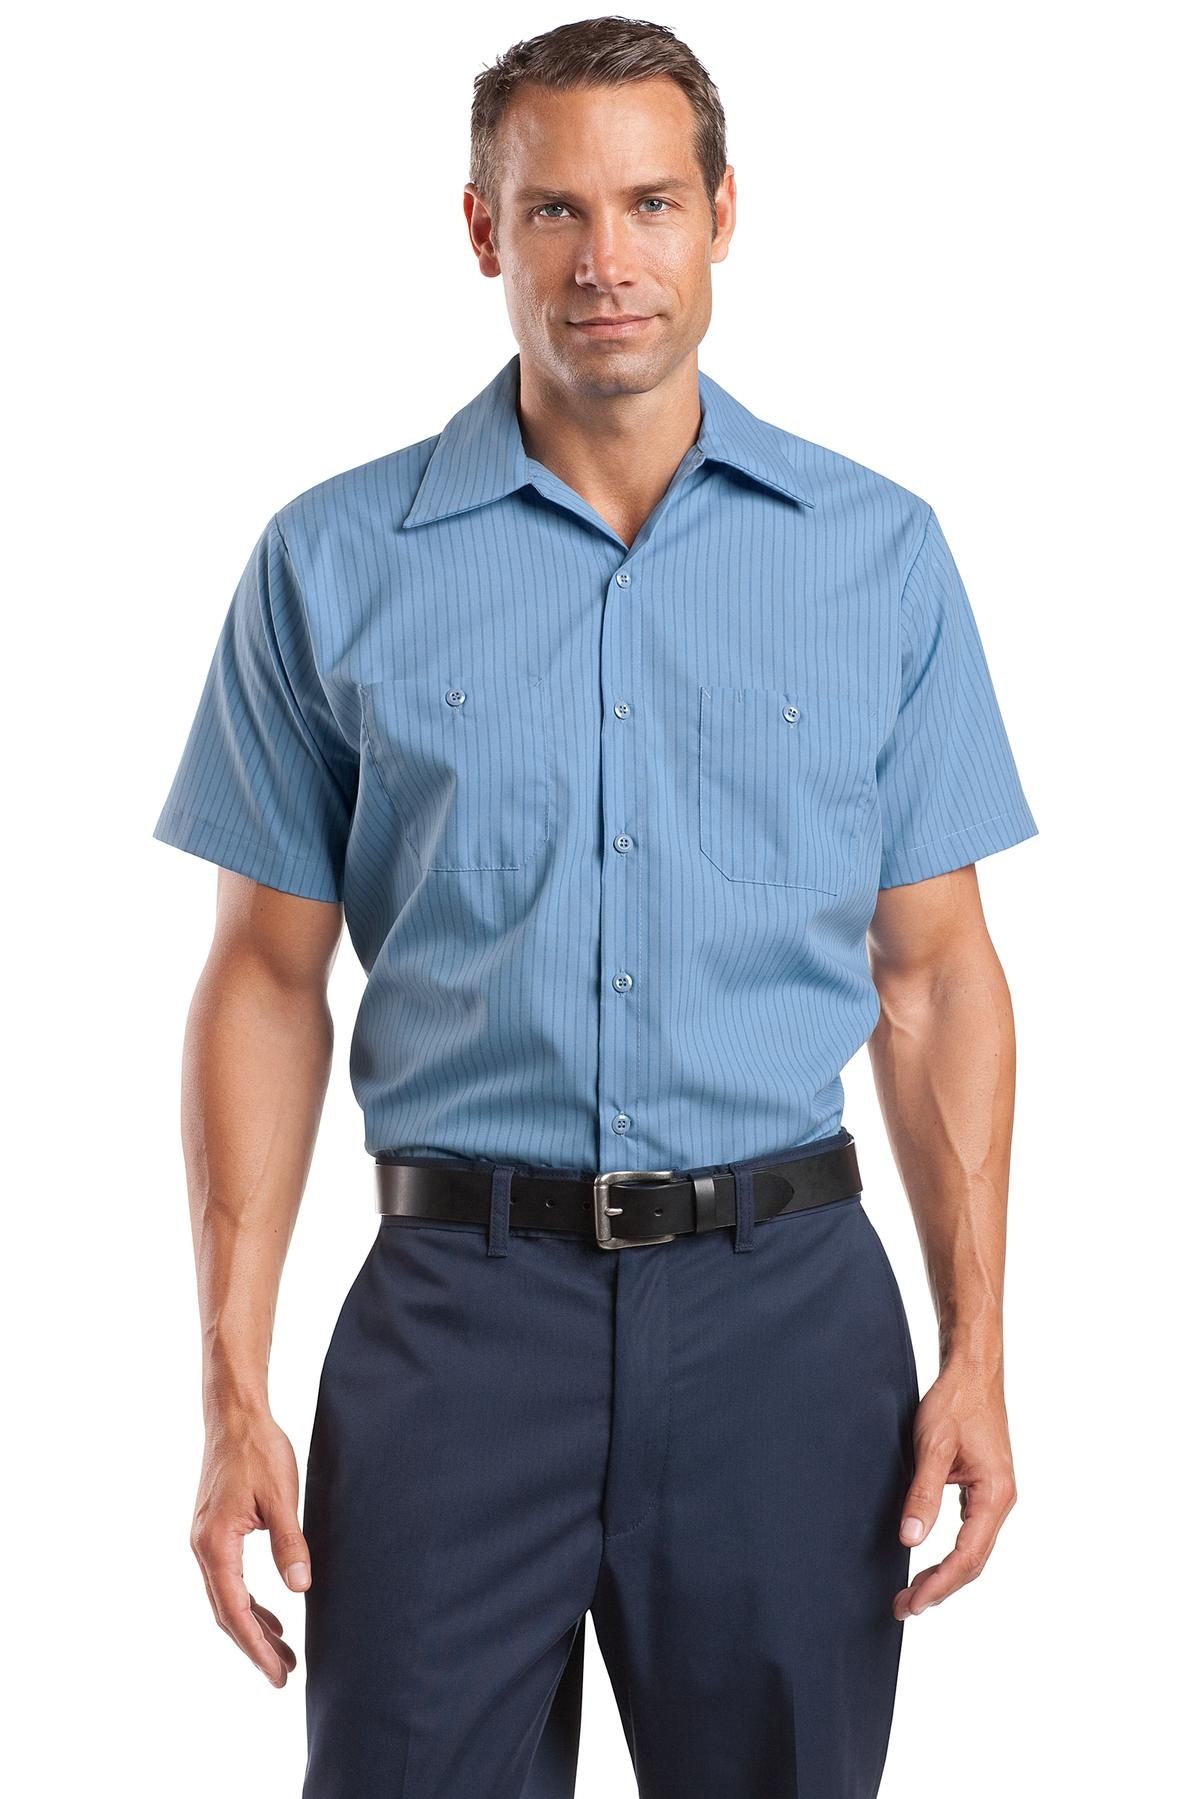 Red Kap ®  Long Size, Short Sleeve Striped Industrial Work Shirt. CS20LONG - Petrol Blue/ Navy